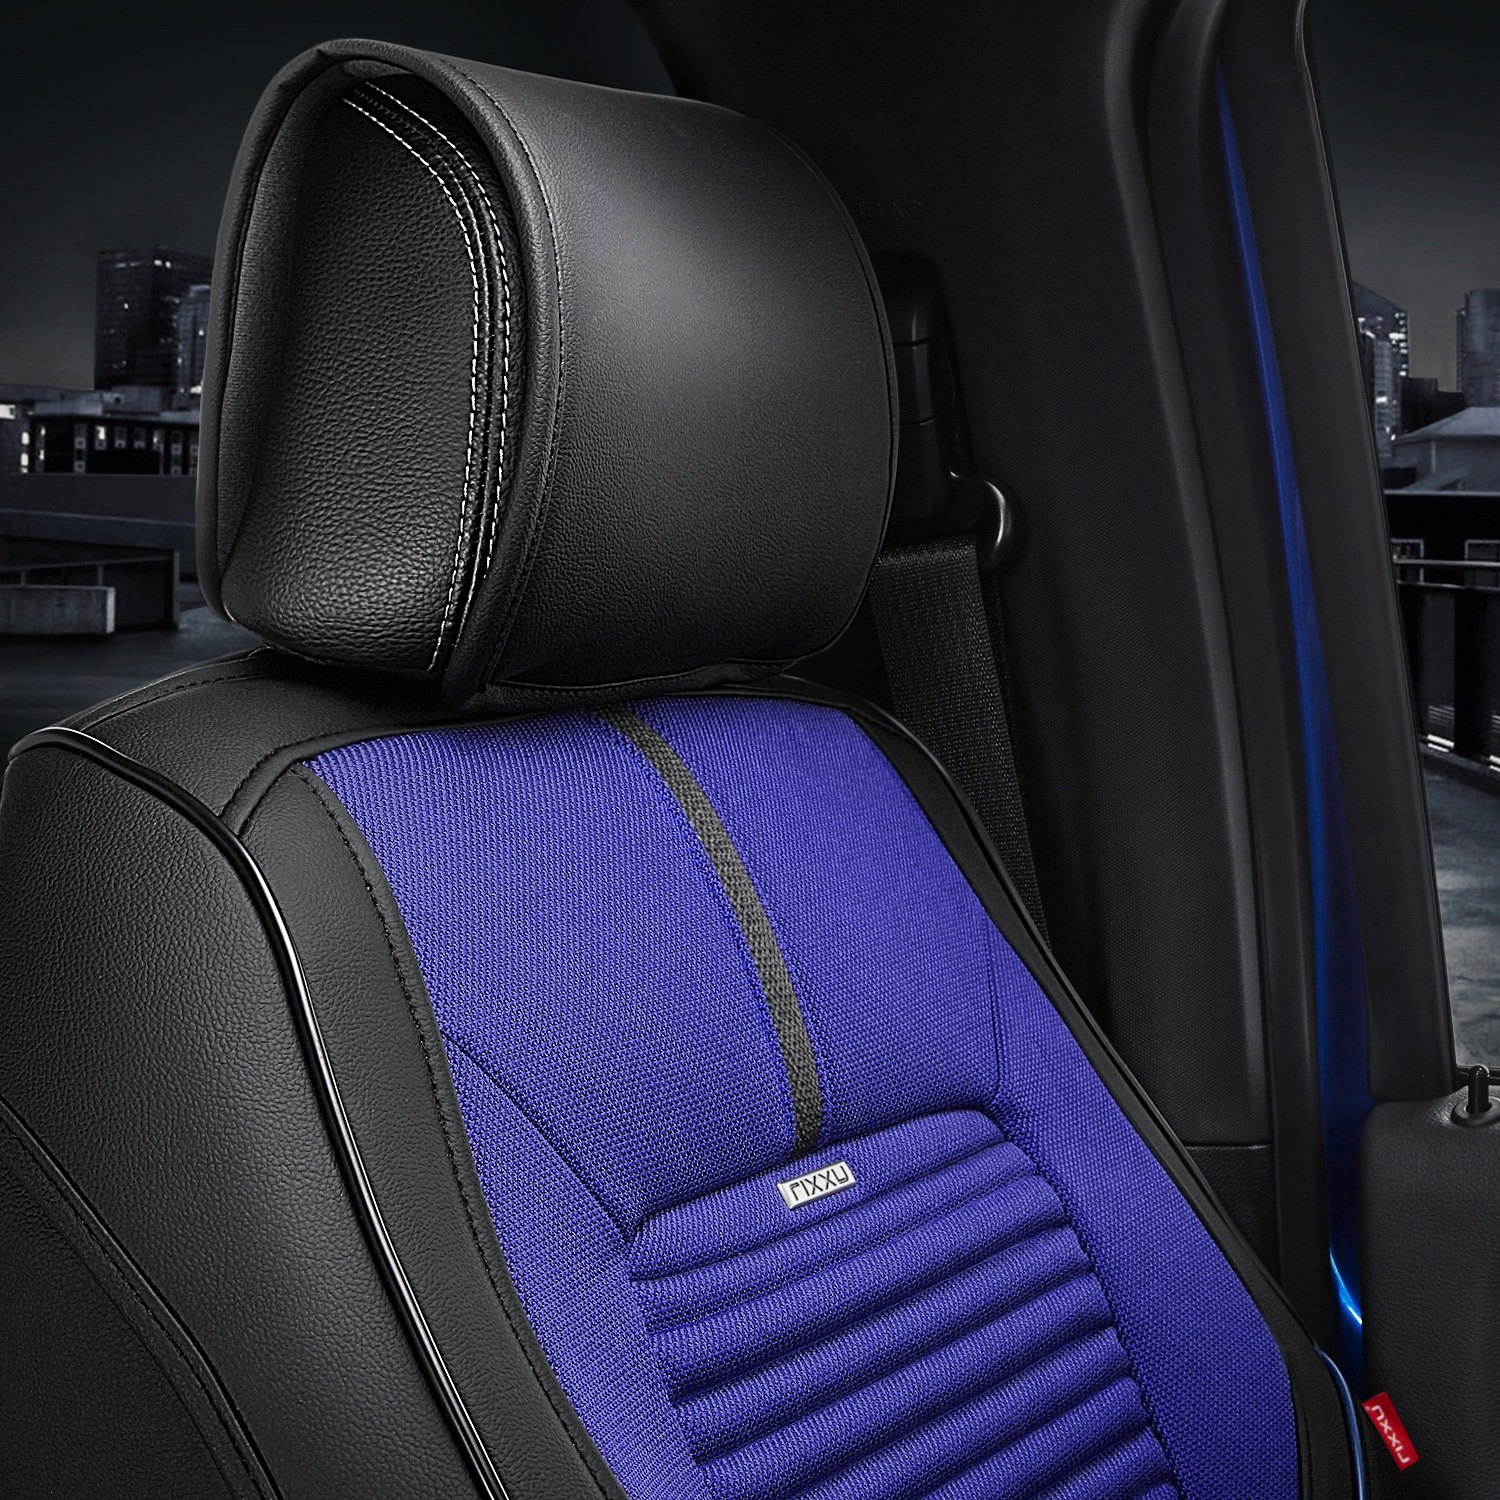 Magnificent Sporty 2 Tone Blue Black Automotive Comfortable Fabric Car Pdpeps Interior Chair Design Pdpepsorg